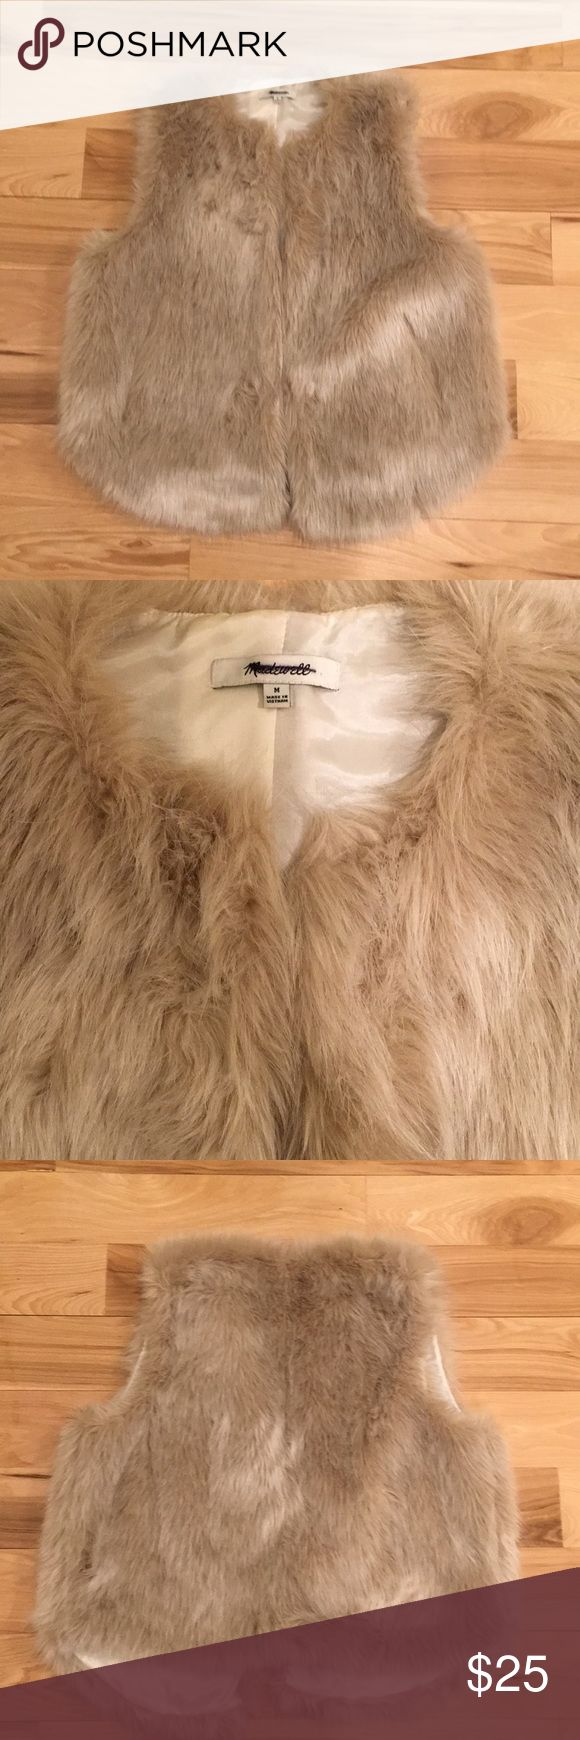 """🔥Madewell Faux Fur Vest sz M🔥 Cute faux fur vest from Madewell in size M. Pretty cream color. Collarless, fur clips for closure, and pockets! Approximately 23"""" long. There are some tiny pin dots on the lining where it was pinned to a display, but it does not effect the outward  appearance of the vest. I tried to show this in the last picture. Madewell Jackets & Coats Vests"""